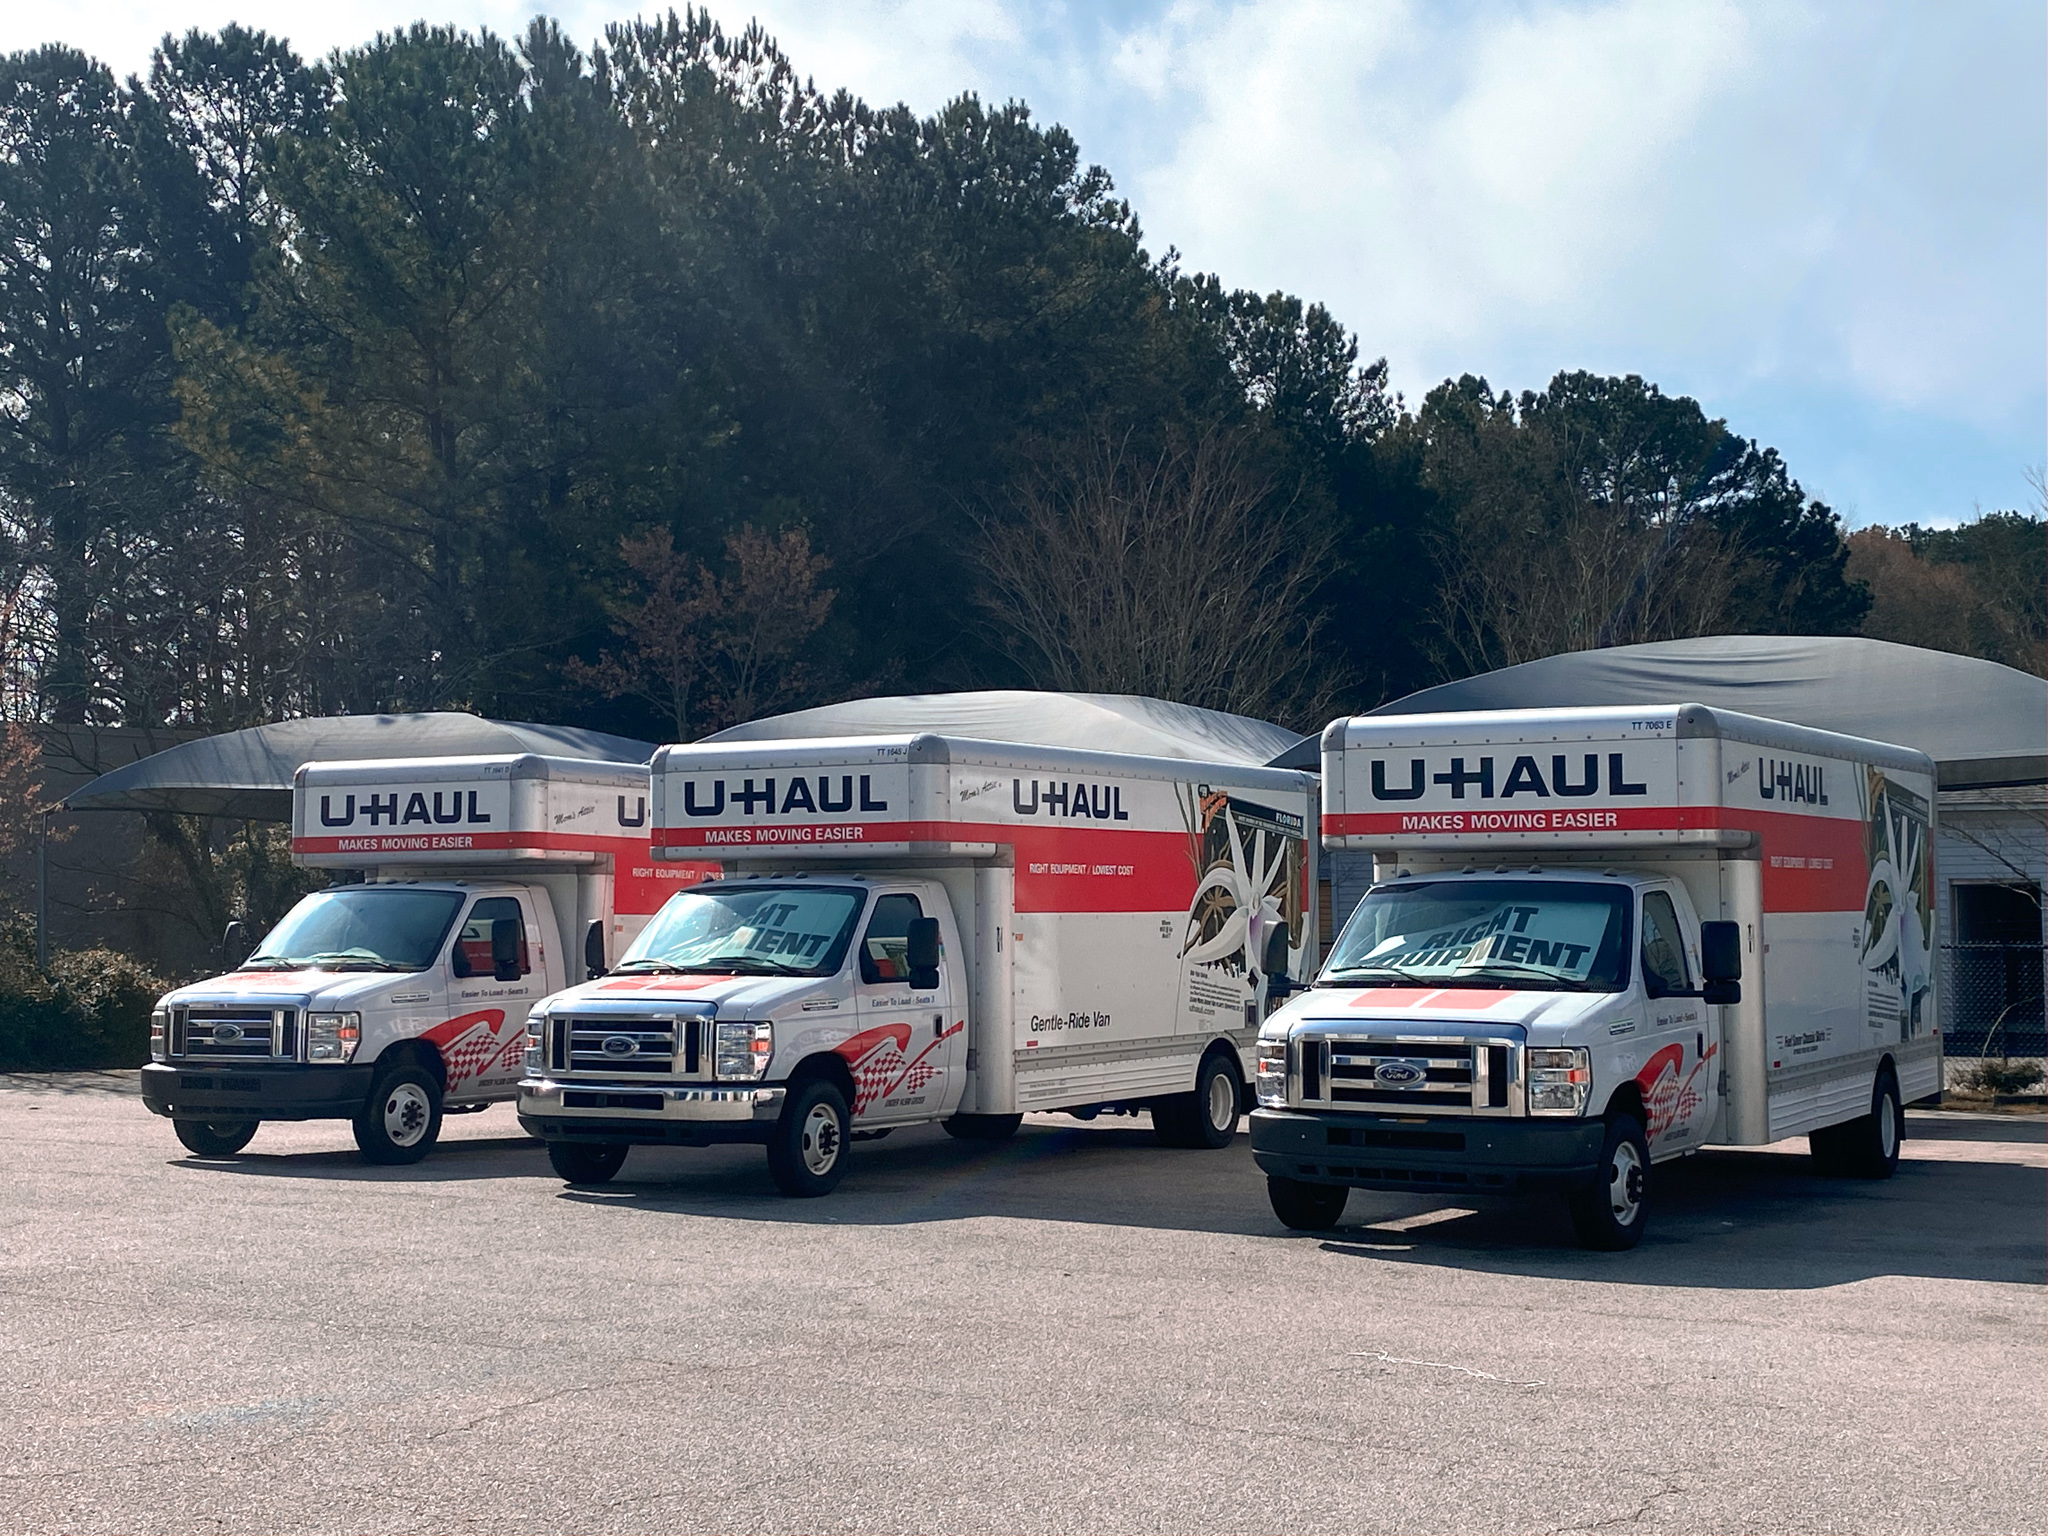 A-1 Mini Storage Rex Uhaul